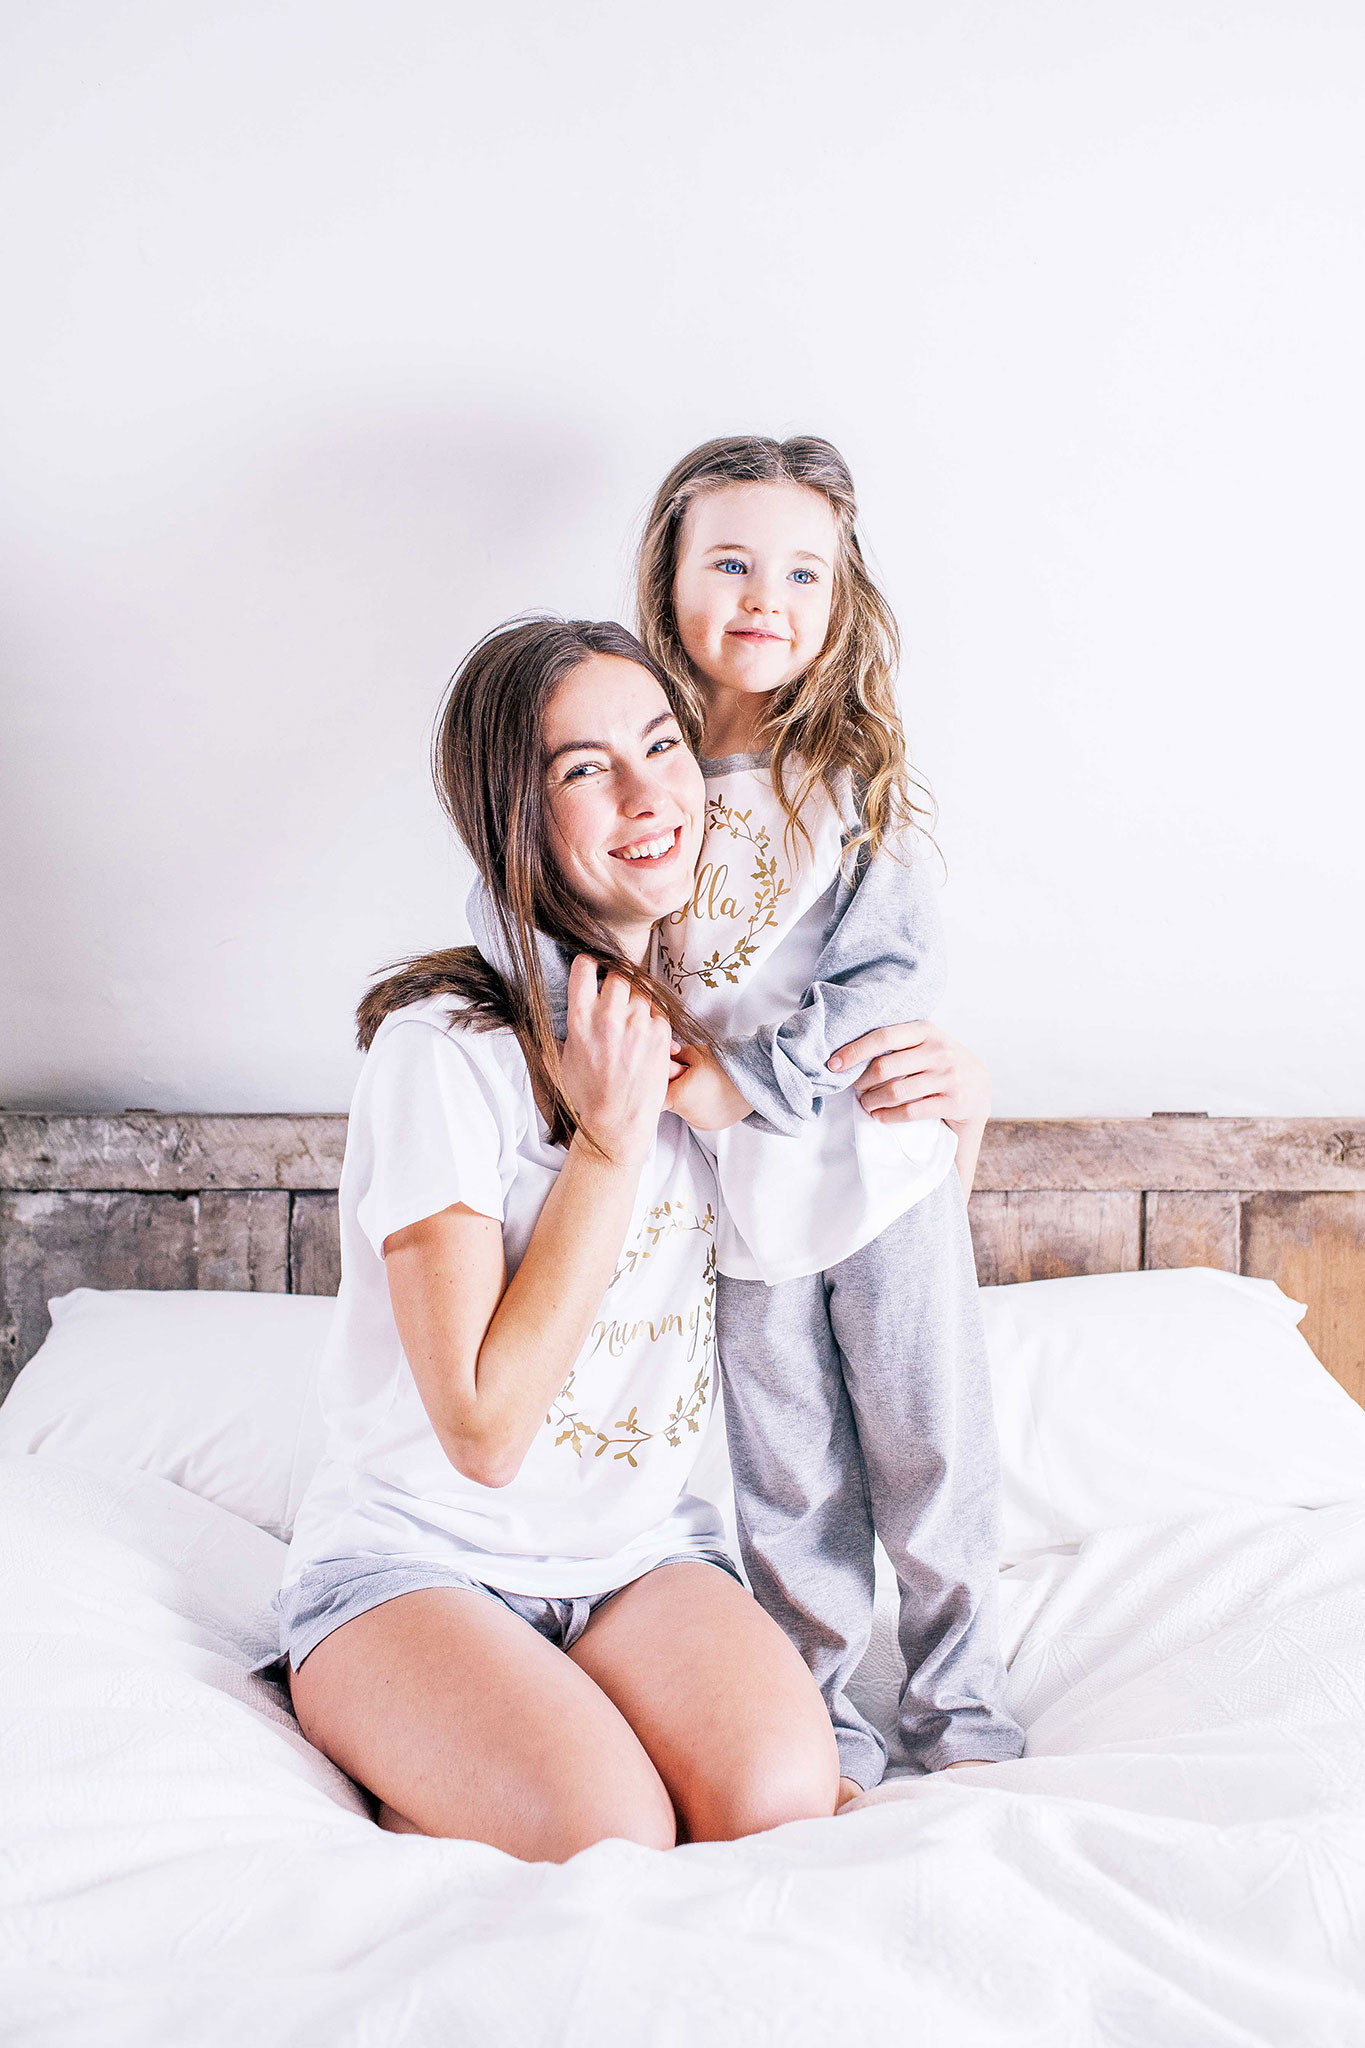 mom and daughter in matching pyjamas on white linen